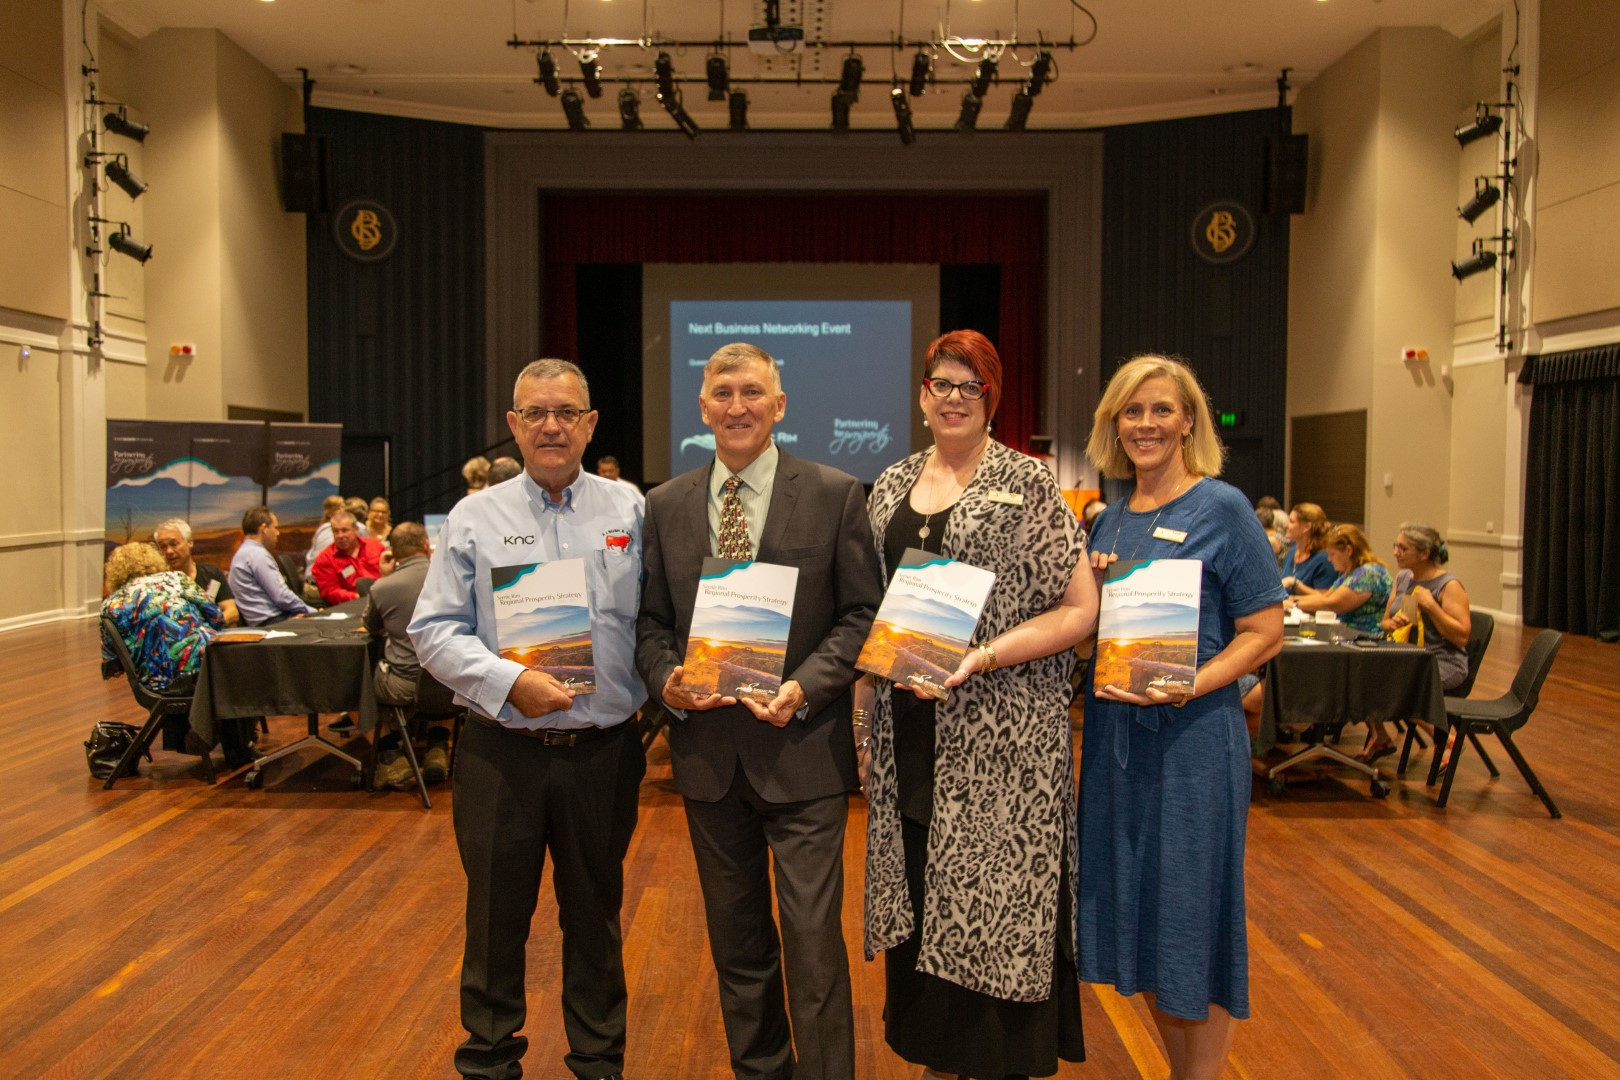 David Kassulke, Beaudesert Chamber of Commerce, Mayor Greg Christensen, Debra Howe and Brenda Walker, Scenic Rim Regional Council celebrate the launch of the Regional Prosperity Strategy at the February business breakfast.